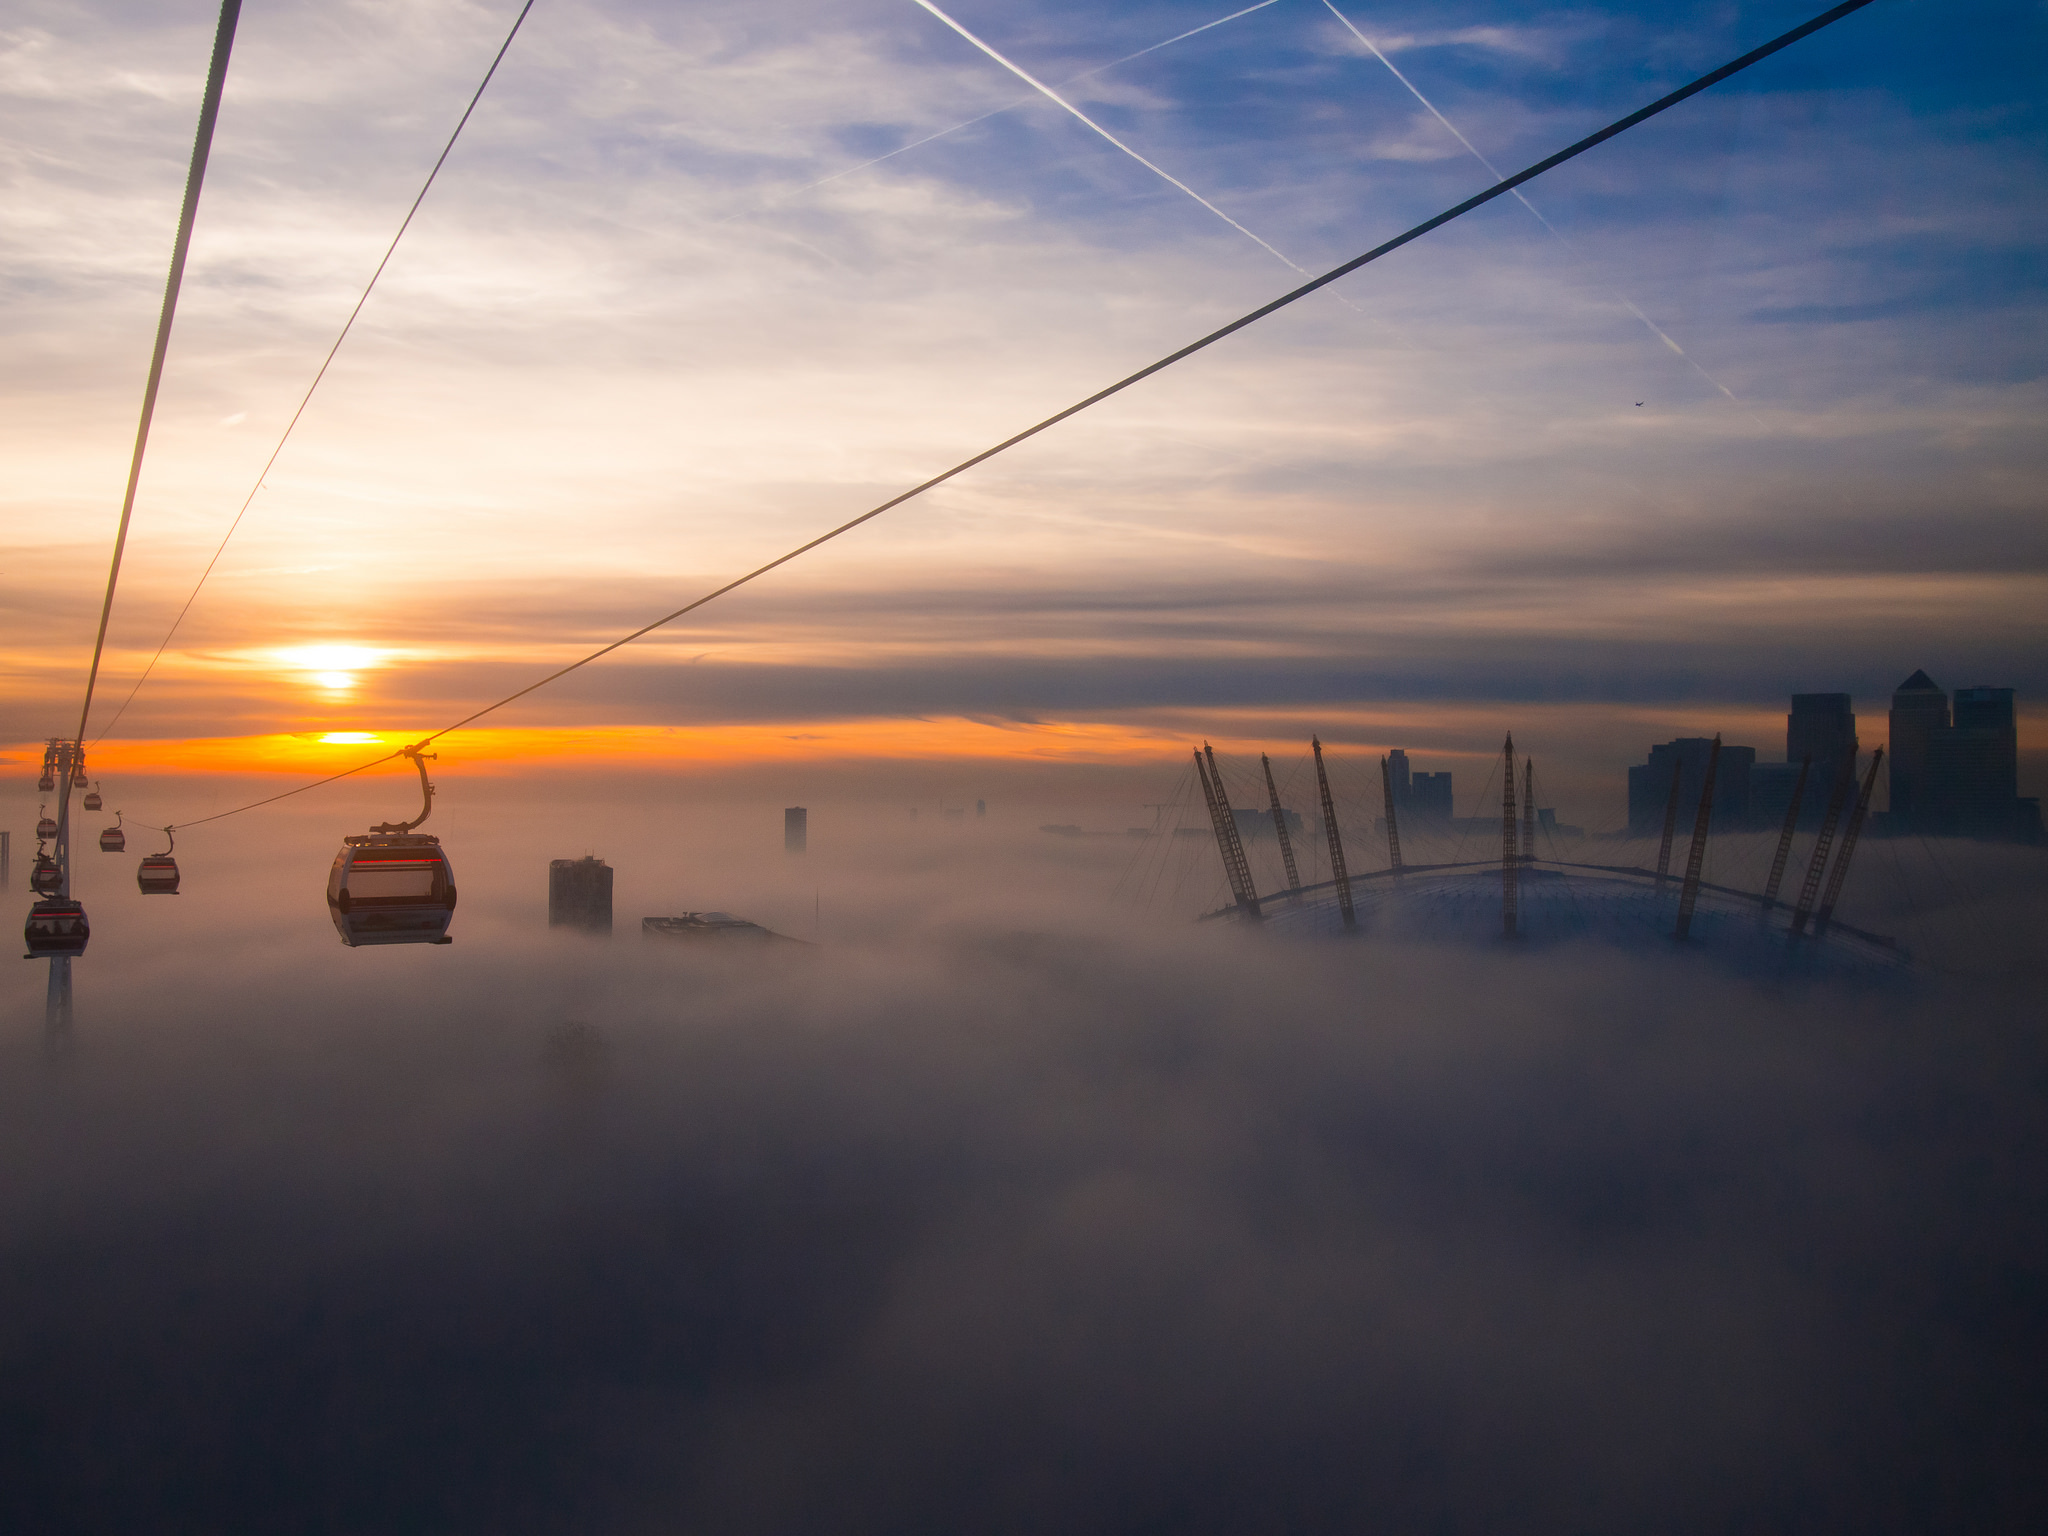 Fog appears to make London's cable car, or the Emirates Air Line, appear to float above the clouds.